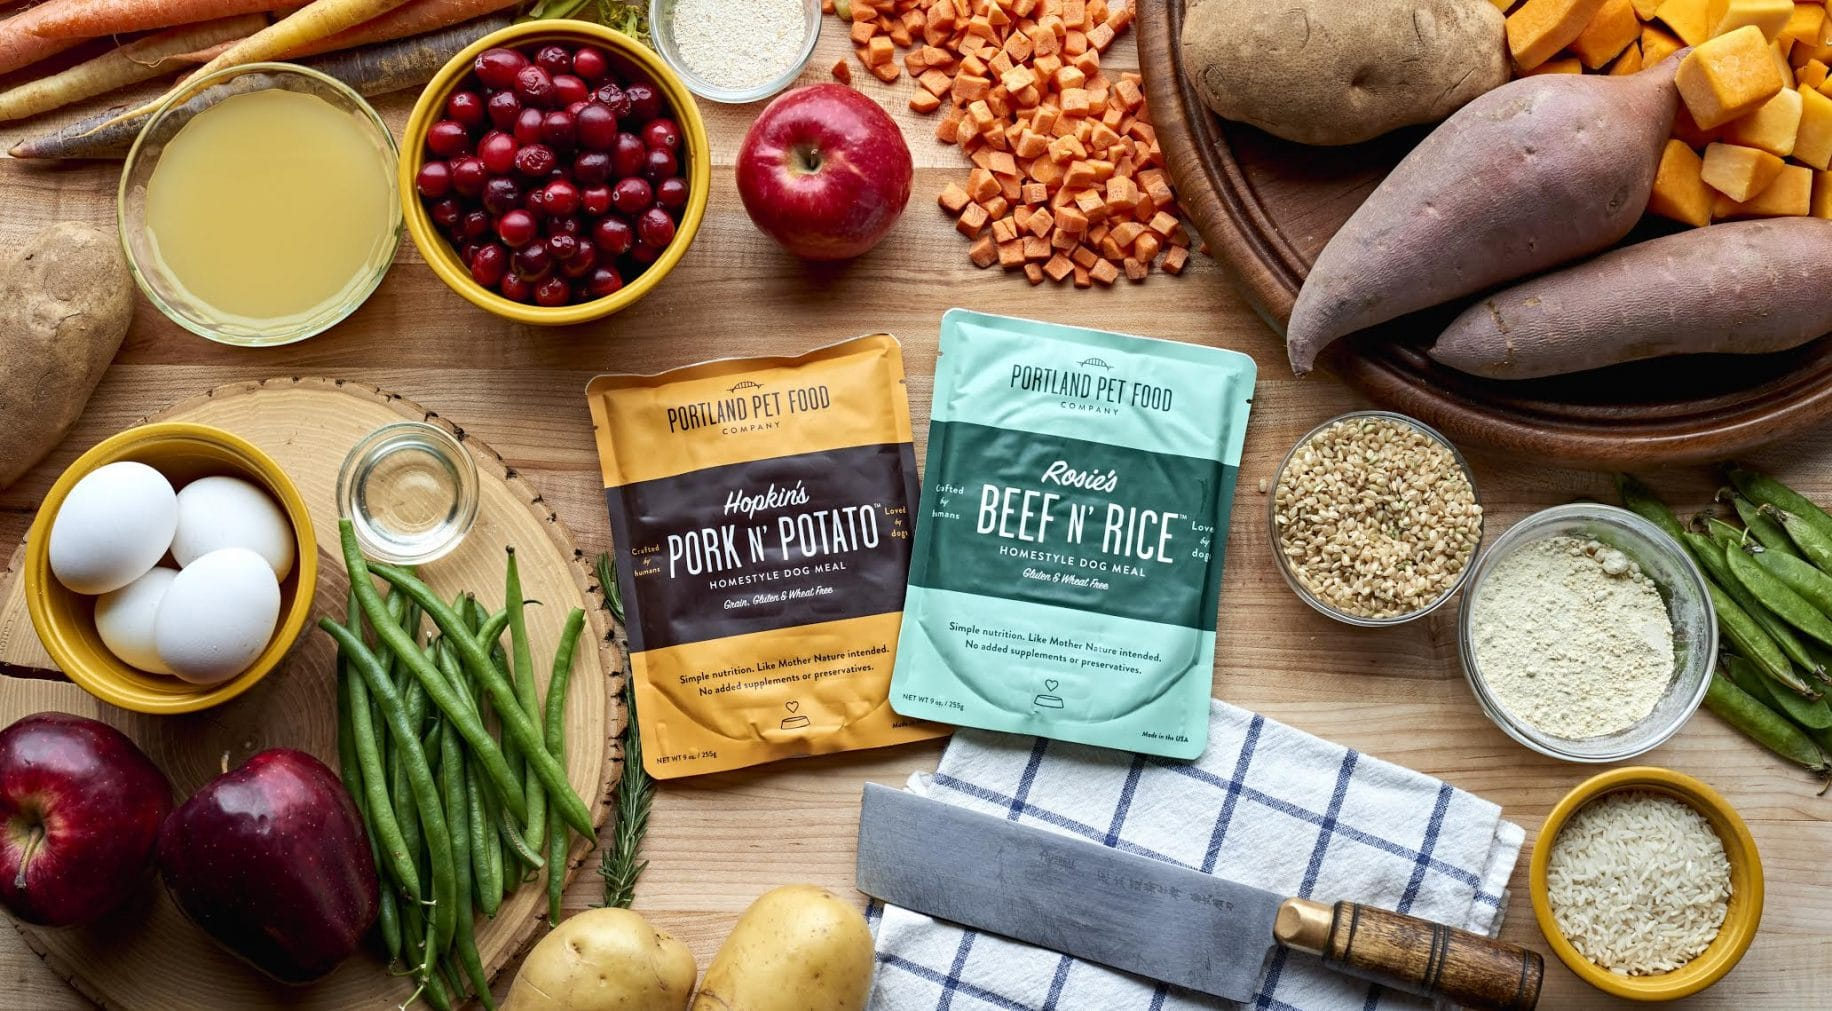 portland dog food 1024x565 - Natural Products Expo West 2018: Exhibitors to put on your visit list